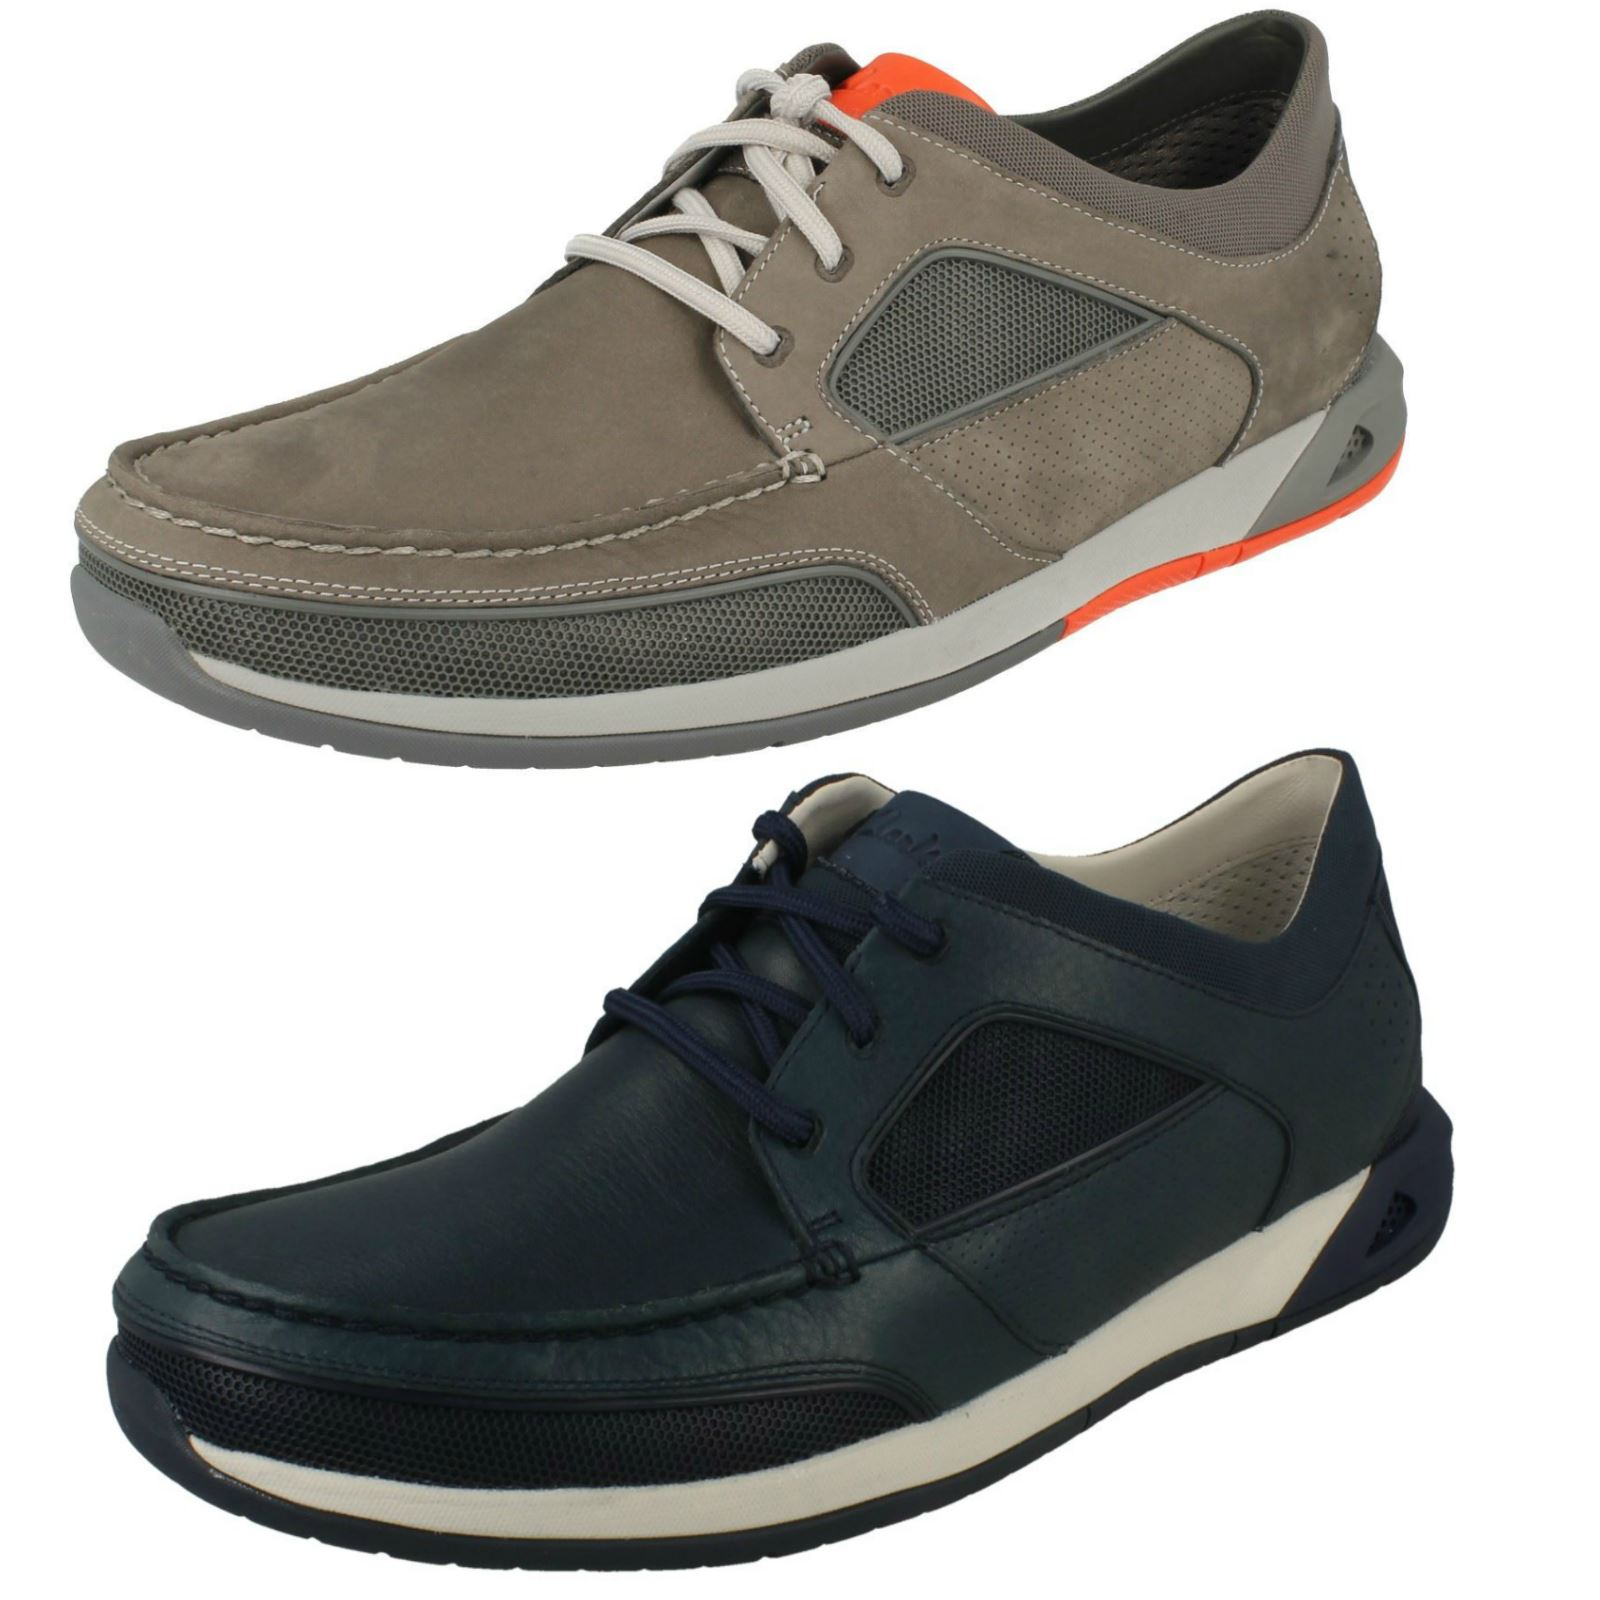 8c1ab60c1f963 Details about Mens Clarks Ormand Sail Casual Lace Up Moccasin Style Shoes